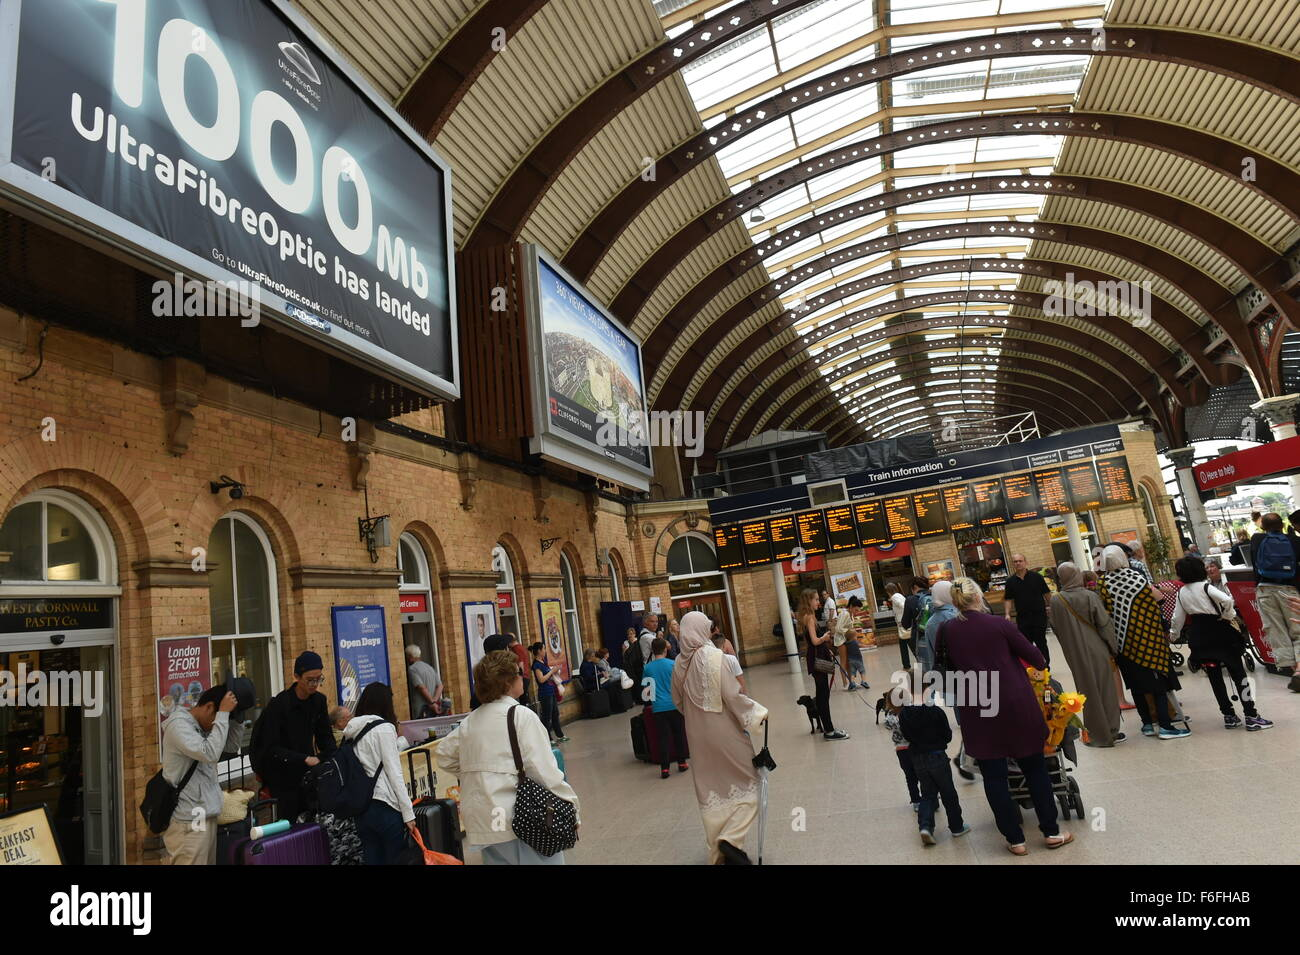 Crowds fill the platforms at  York Railway Station - Stock Image